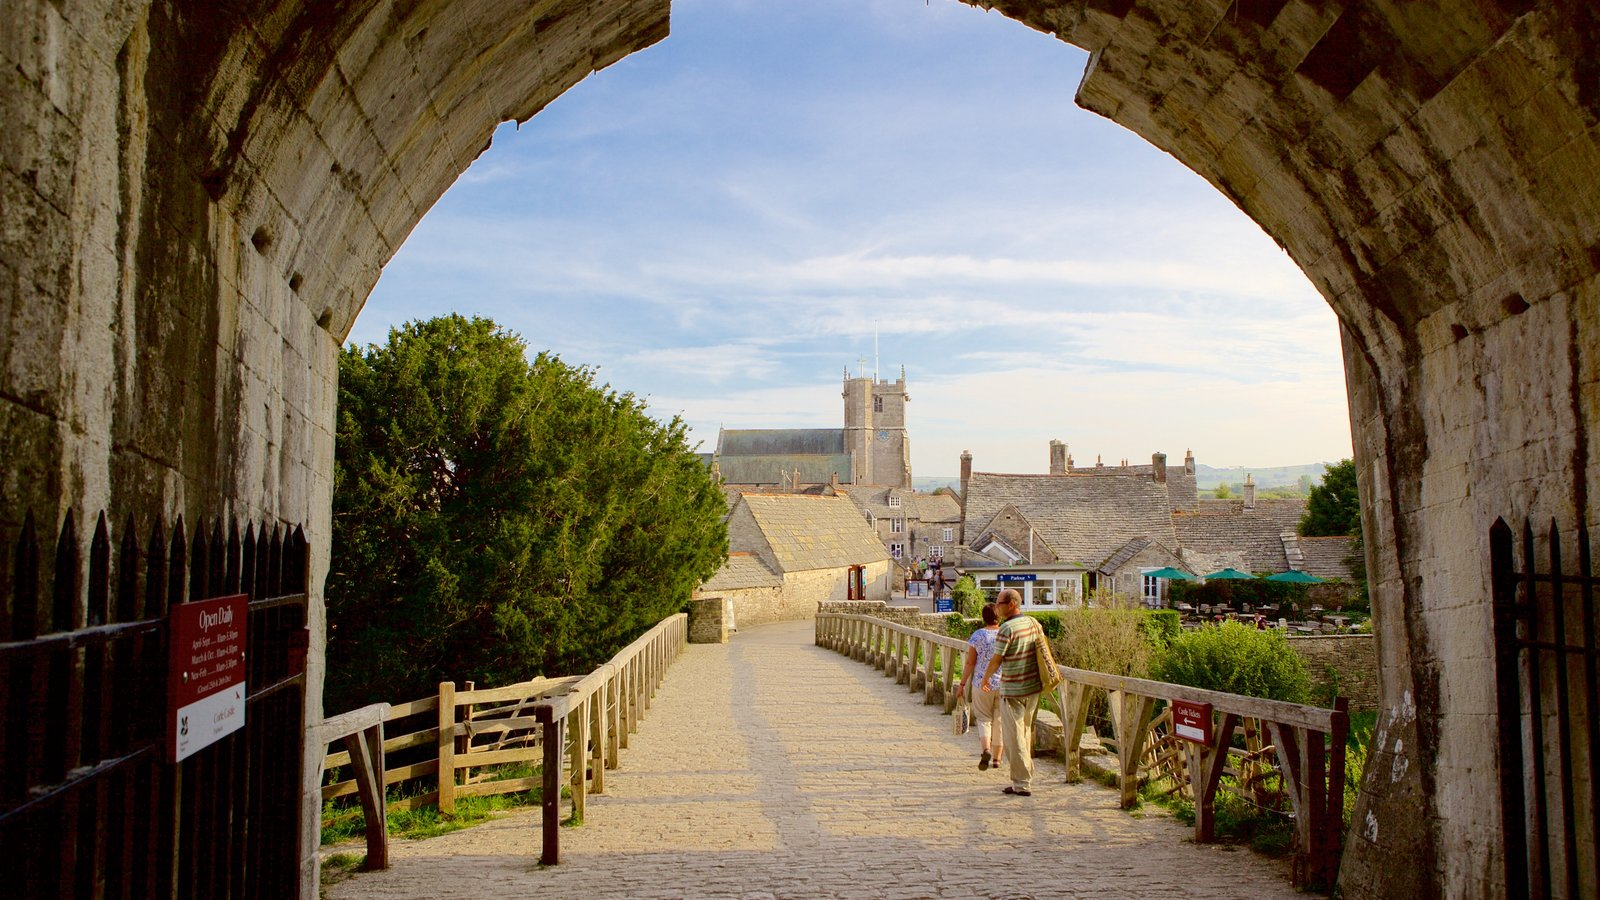 Corfe Castle which includes heritage elements as well as a couple